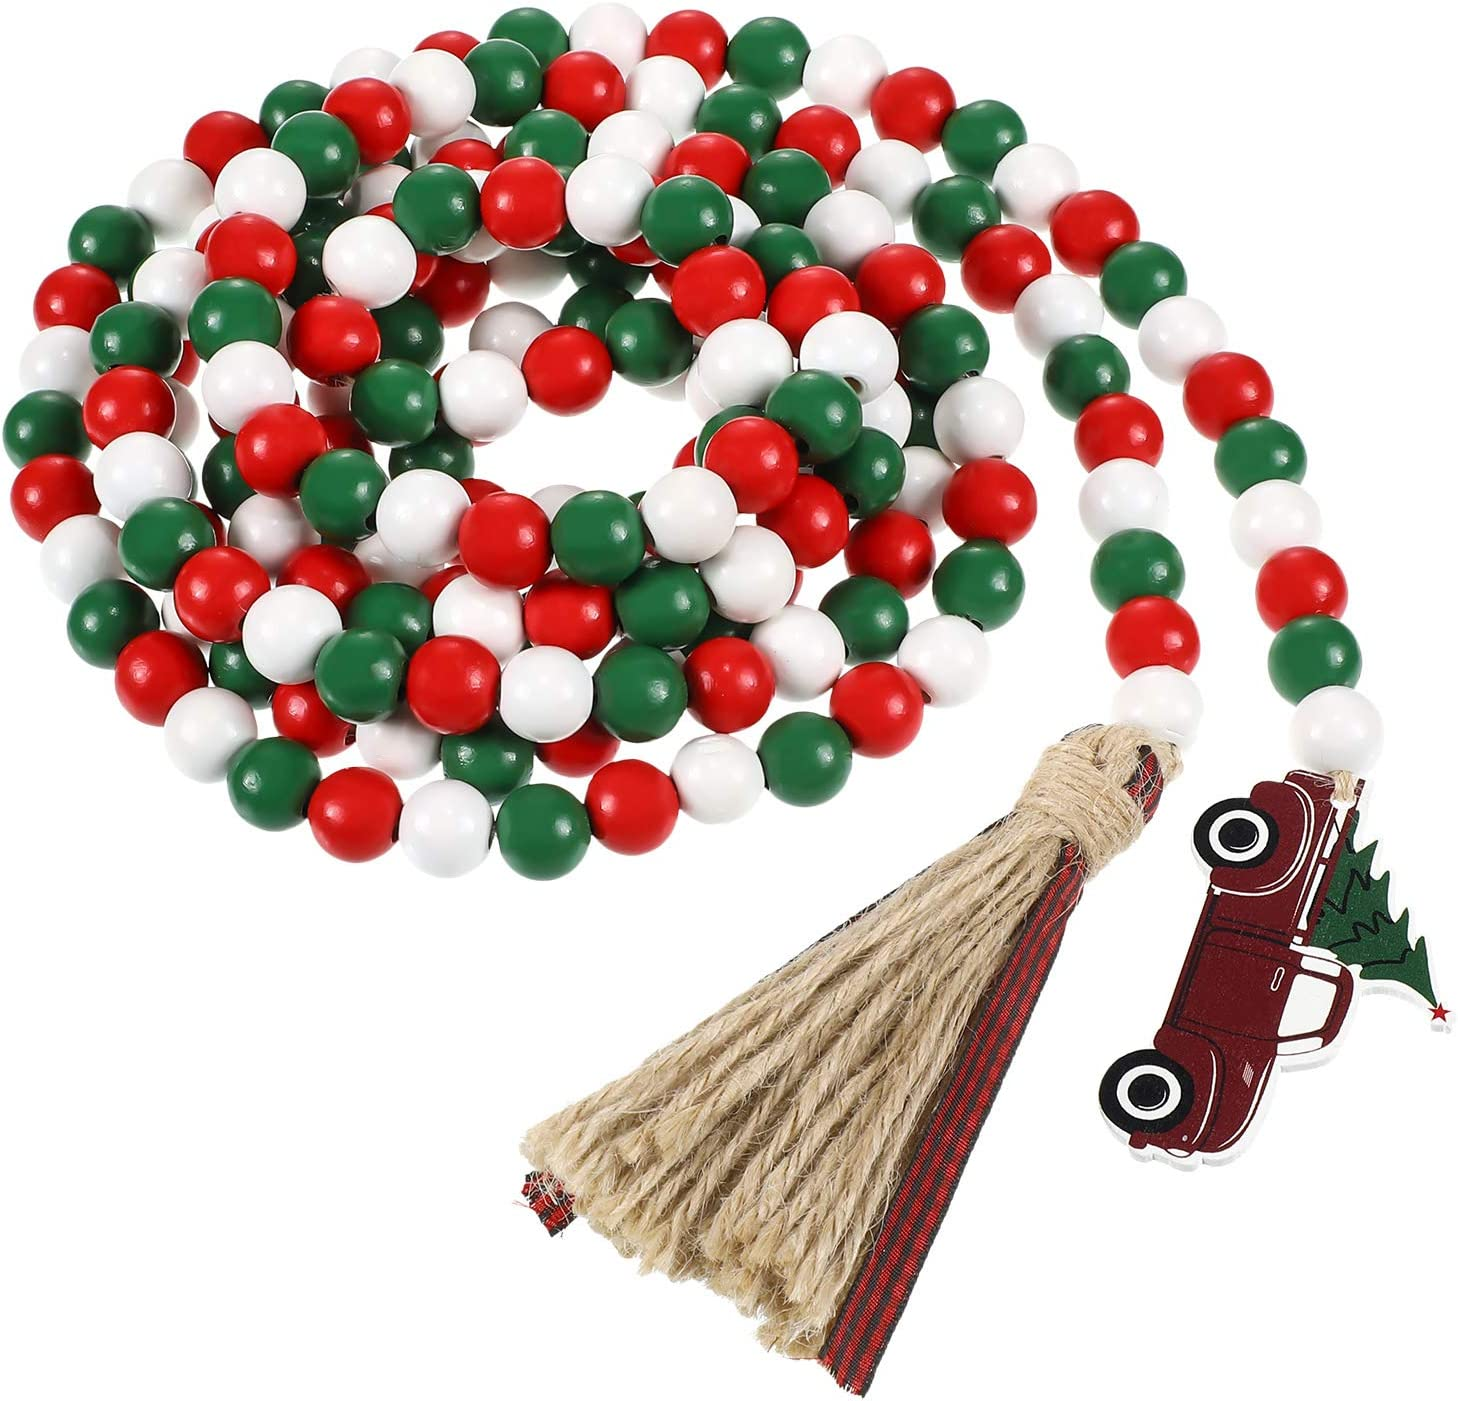 9 Feet Christmas Wooden Bead Garland Buffalo Plaid Rustic Tassels and Red Truck Tag BeadedTasselGarland Red White Green Natural Beads Garland for Christmas TreeHoliday Ornaments Decor Farmhouse